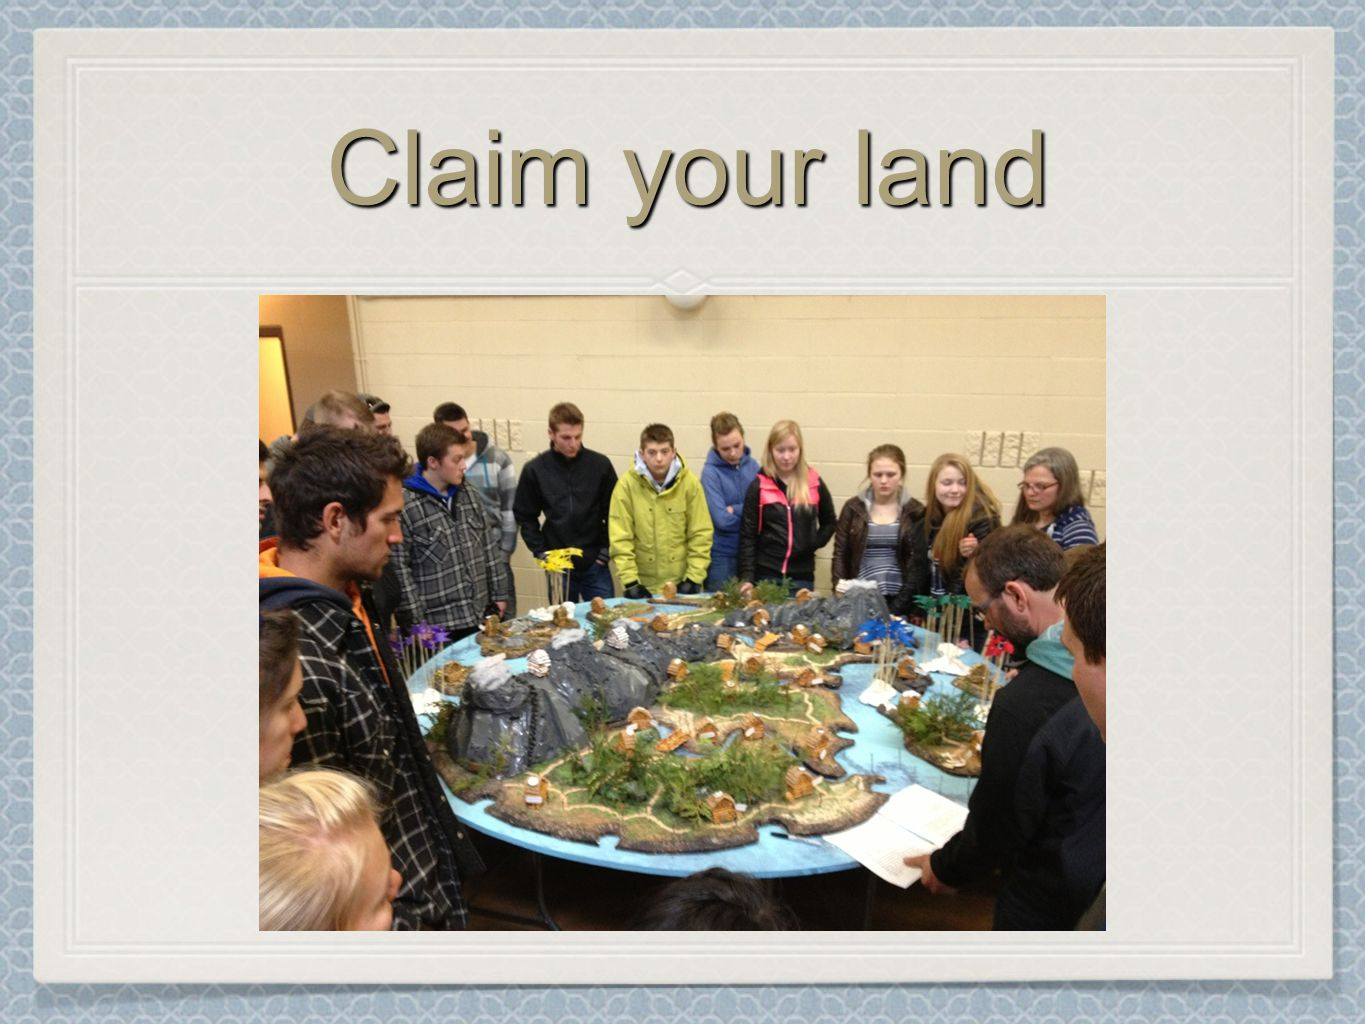 Claim your land